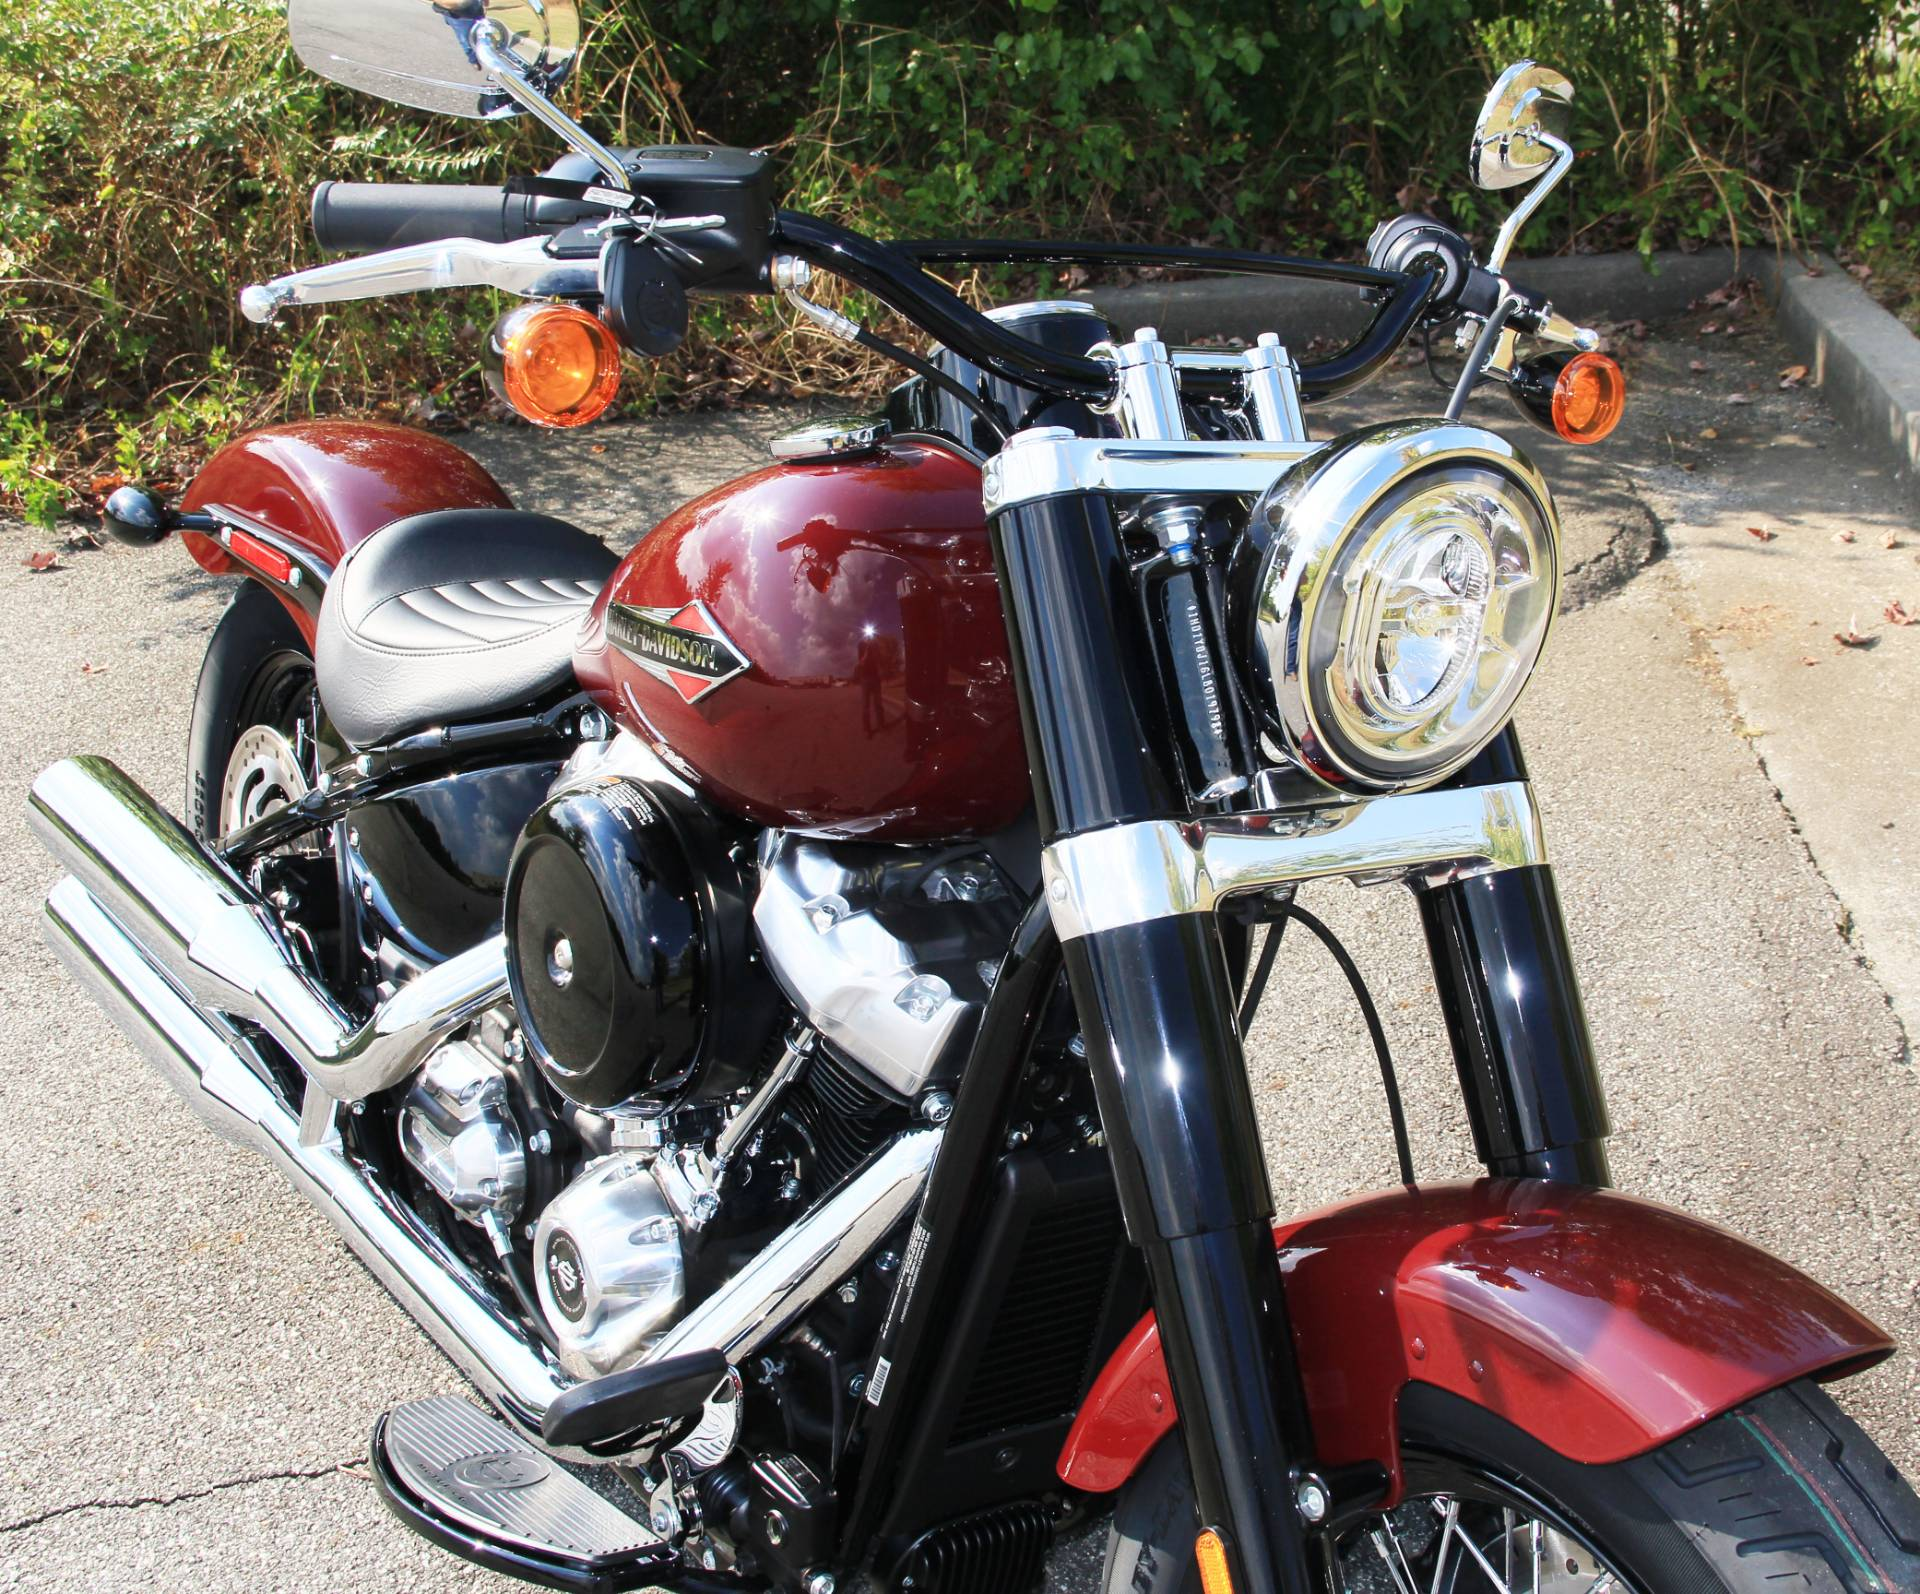 2020 Harley-Davidson Softail Slim in Cartersville, Georgia - Photo 13